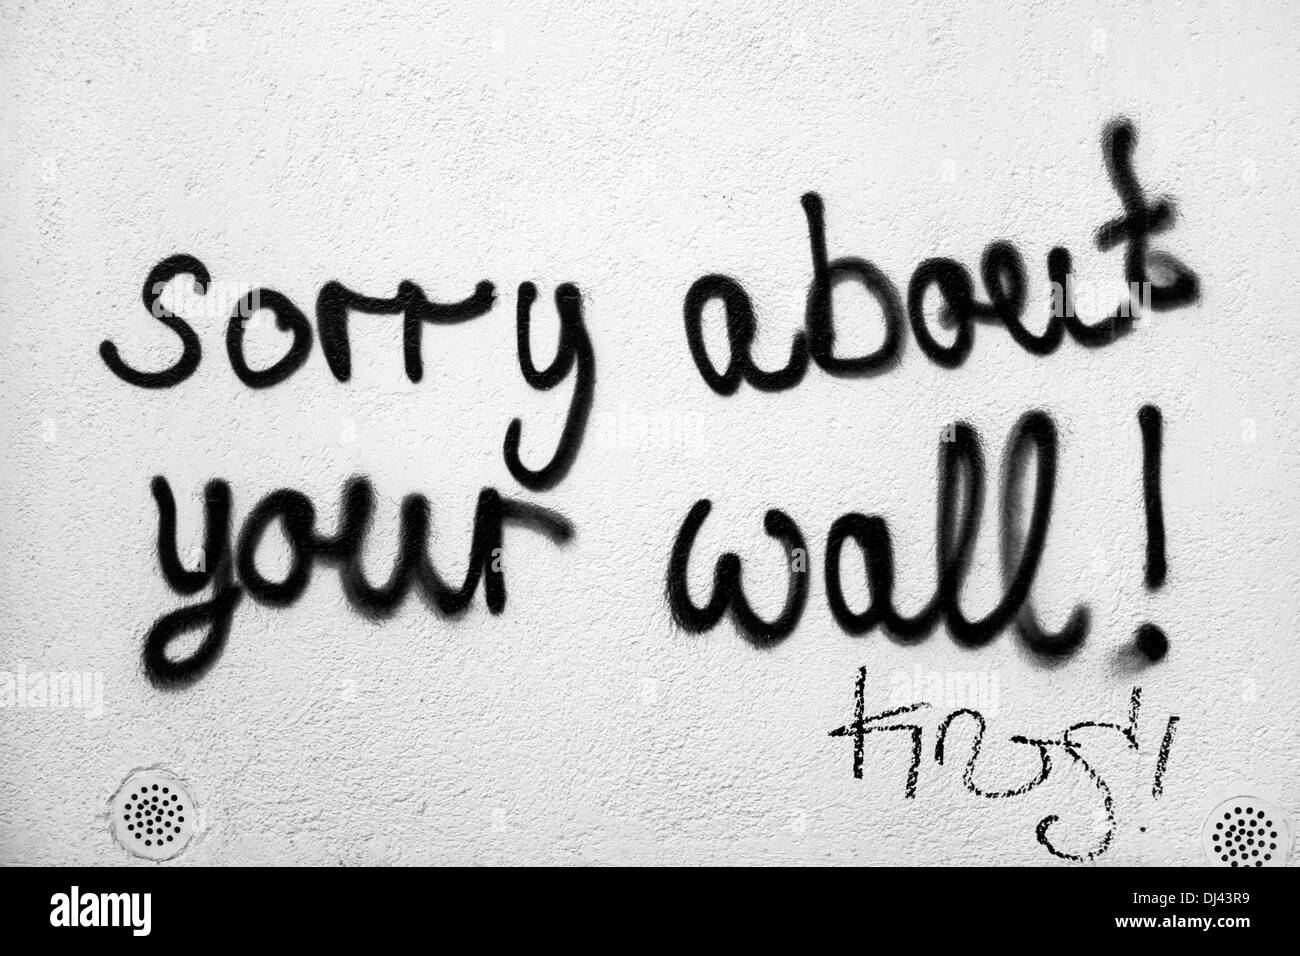 Your graffiti wall - Graffiti On Wall Sorry About Your Wall